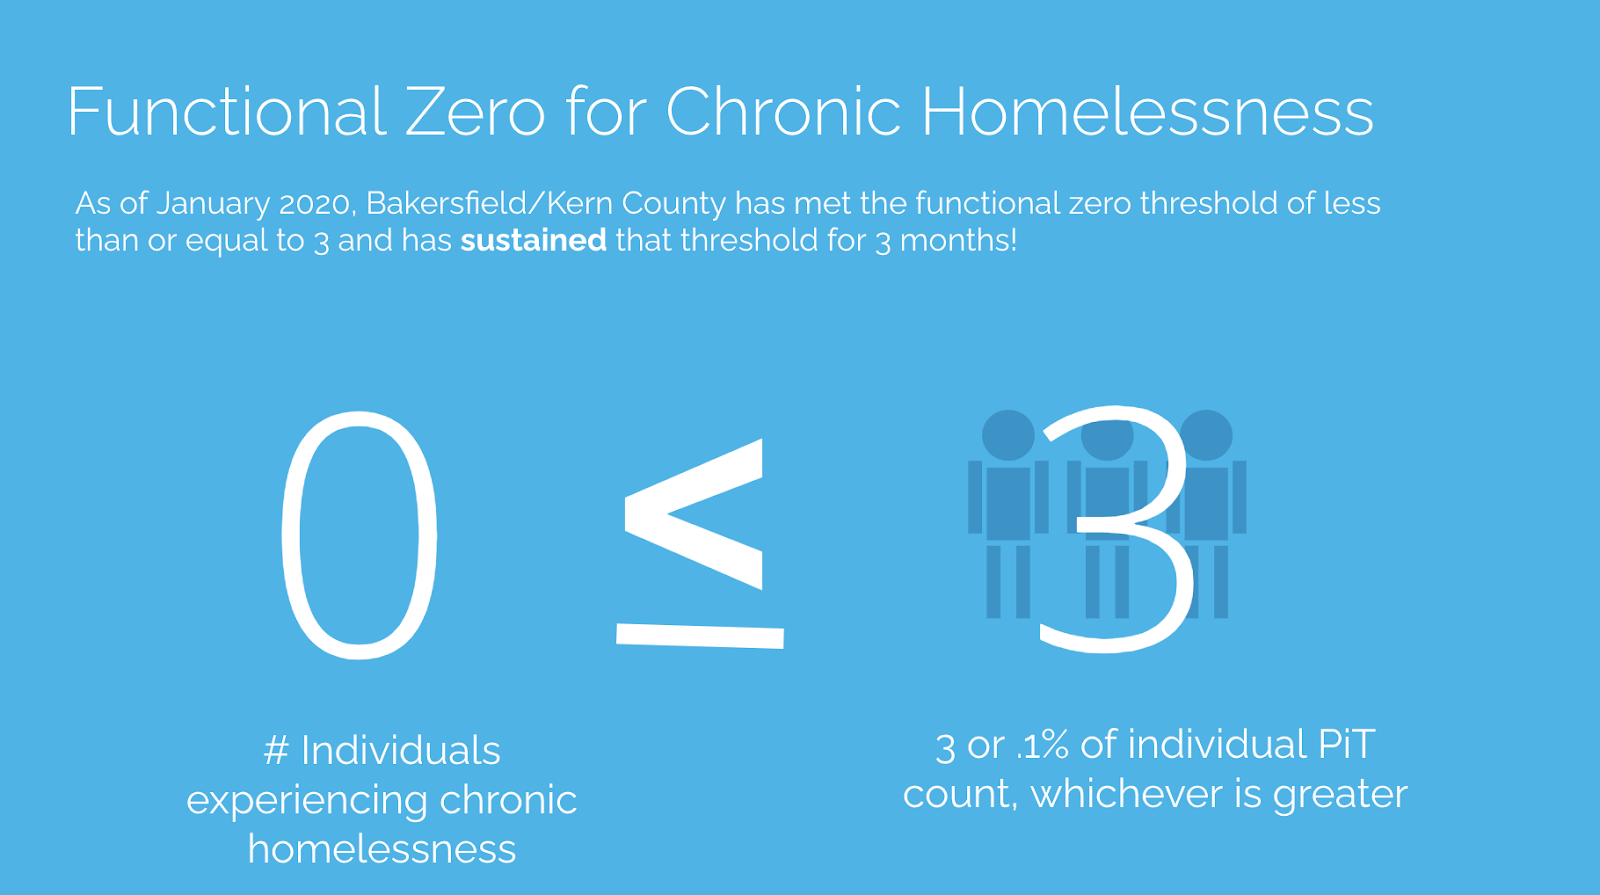 Functional Zero for Chronic Homelessness  As of January 2020, Bakersfield/Kern County has met the functional zero threshold of less than or equal to 3 and has sustained that threshold for 3 months.  0 (# of individuals experiencing chronic homelessness) ≤ 3 (3 or 0.1% of individual PIT count, whichever is greater)